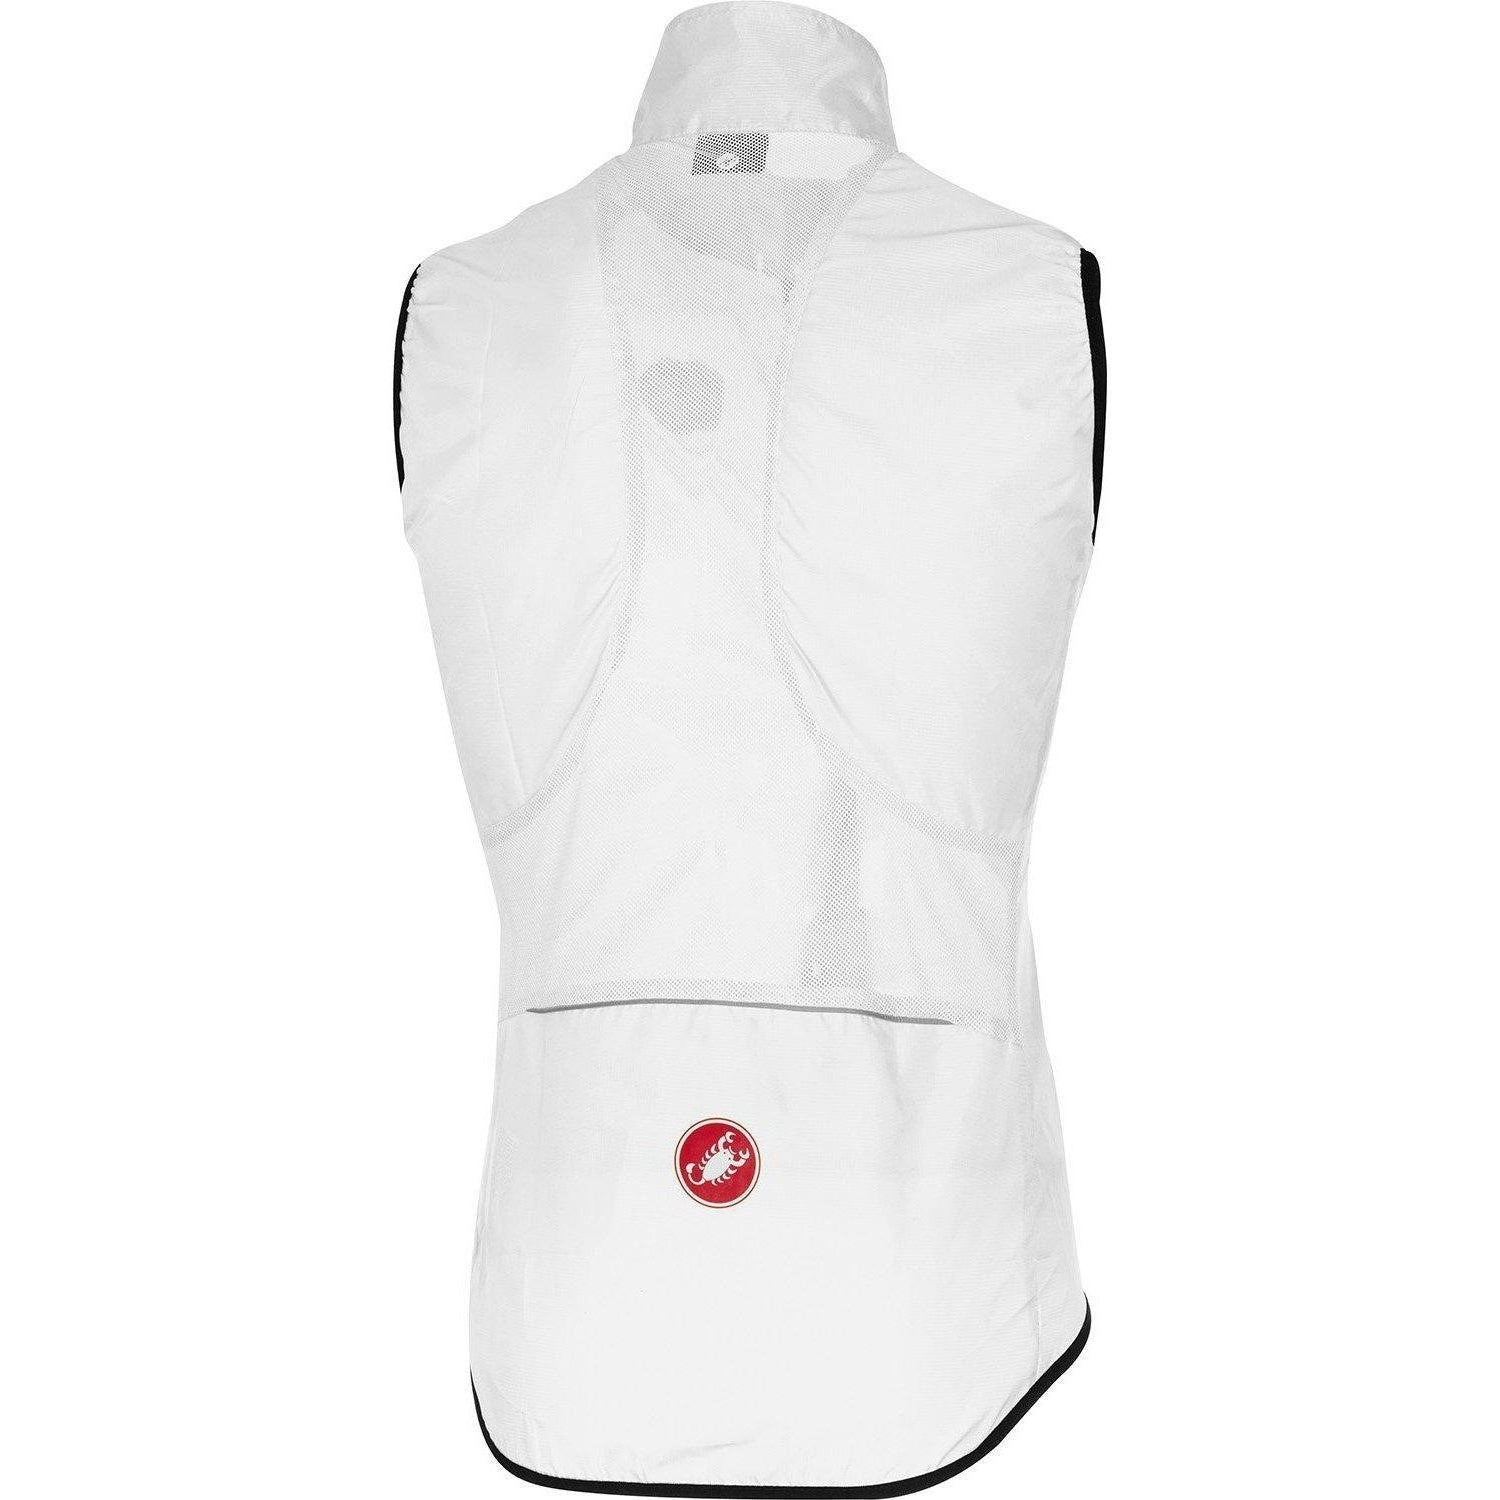 Castelli-Castelli Squadra Vest--saddleback-elite-performance-cycling